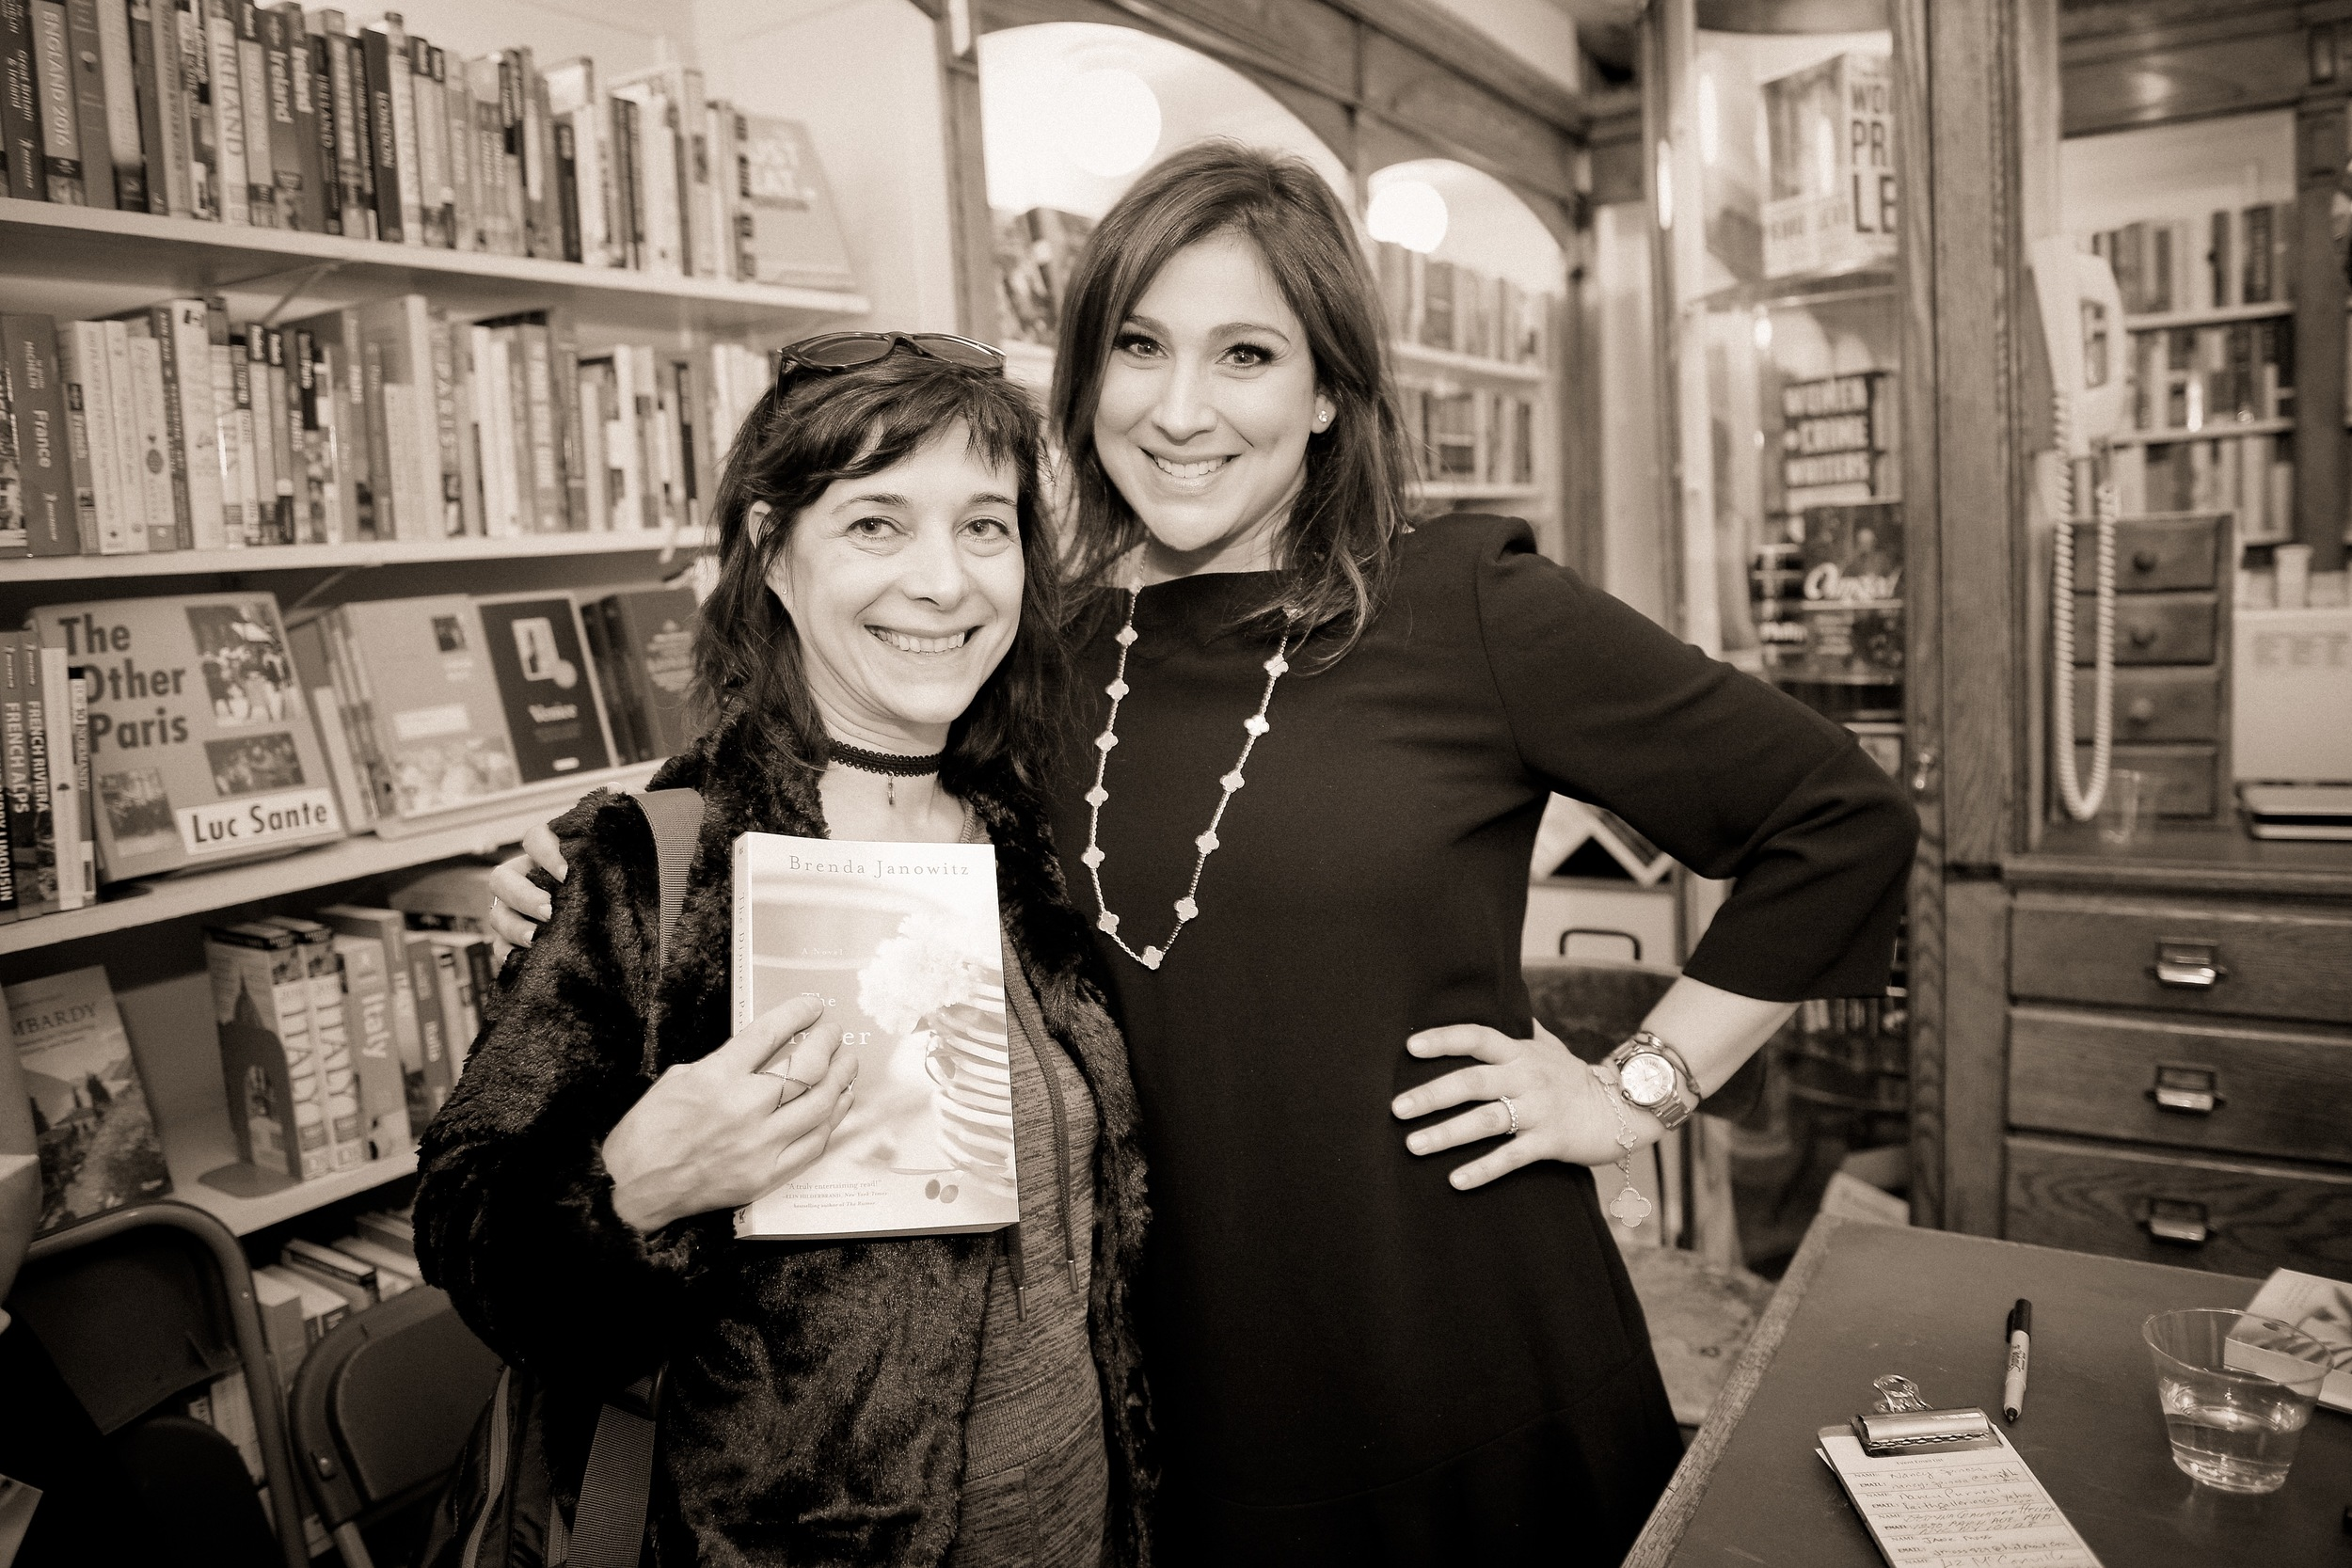 With writer Tracy Marx